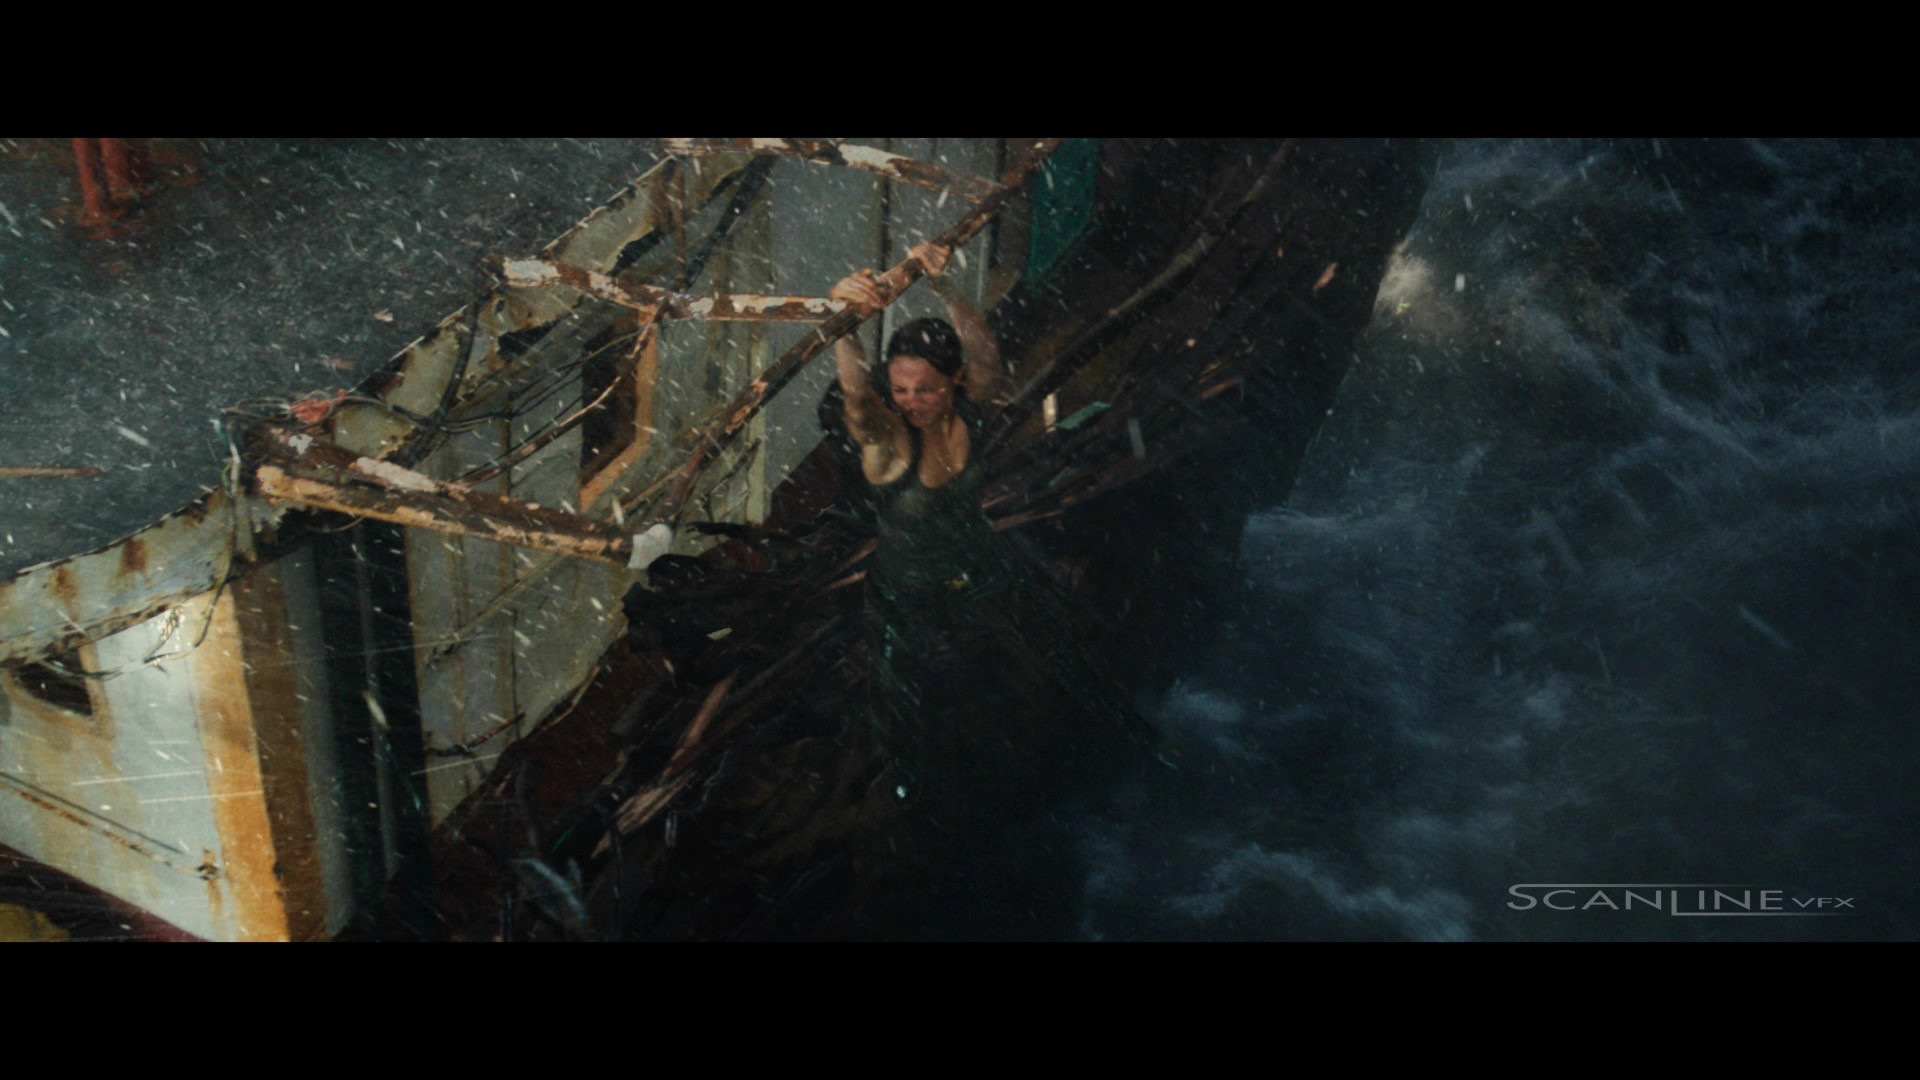 Compositing and integration work I have done in 2018 at Scanline VFX, as a Compositor. Featuring: Tomb Raider.  Green Screen + CG Boat  Damage + CG Water + Ocean Integration + 2D Elements.